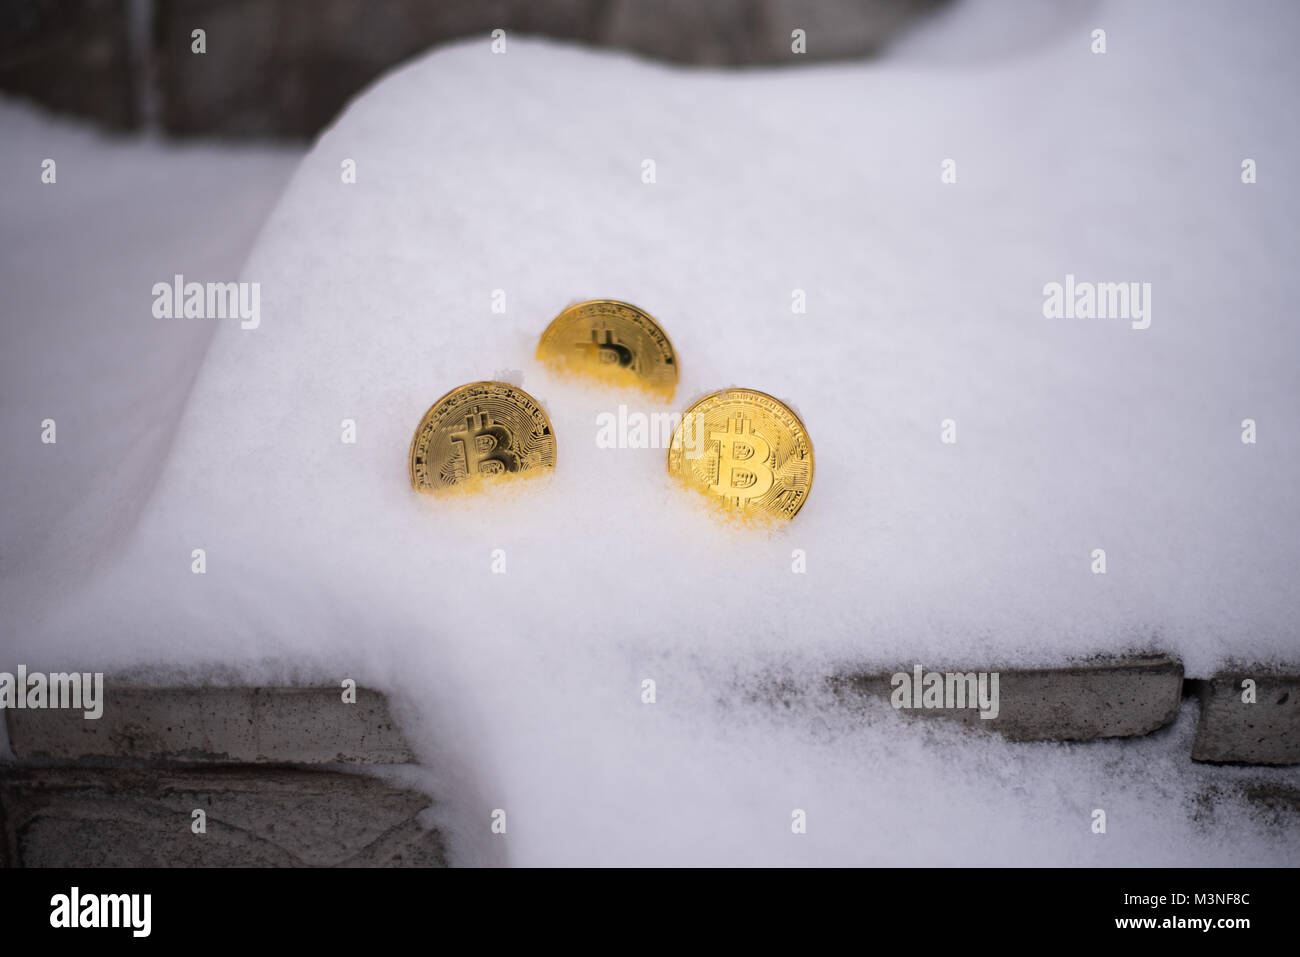 Gold coins bitcoin, crypto-currency in winter, lies in a white snowdrift, on the street. The lost money. Abandoned - Stock Image